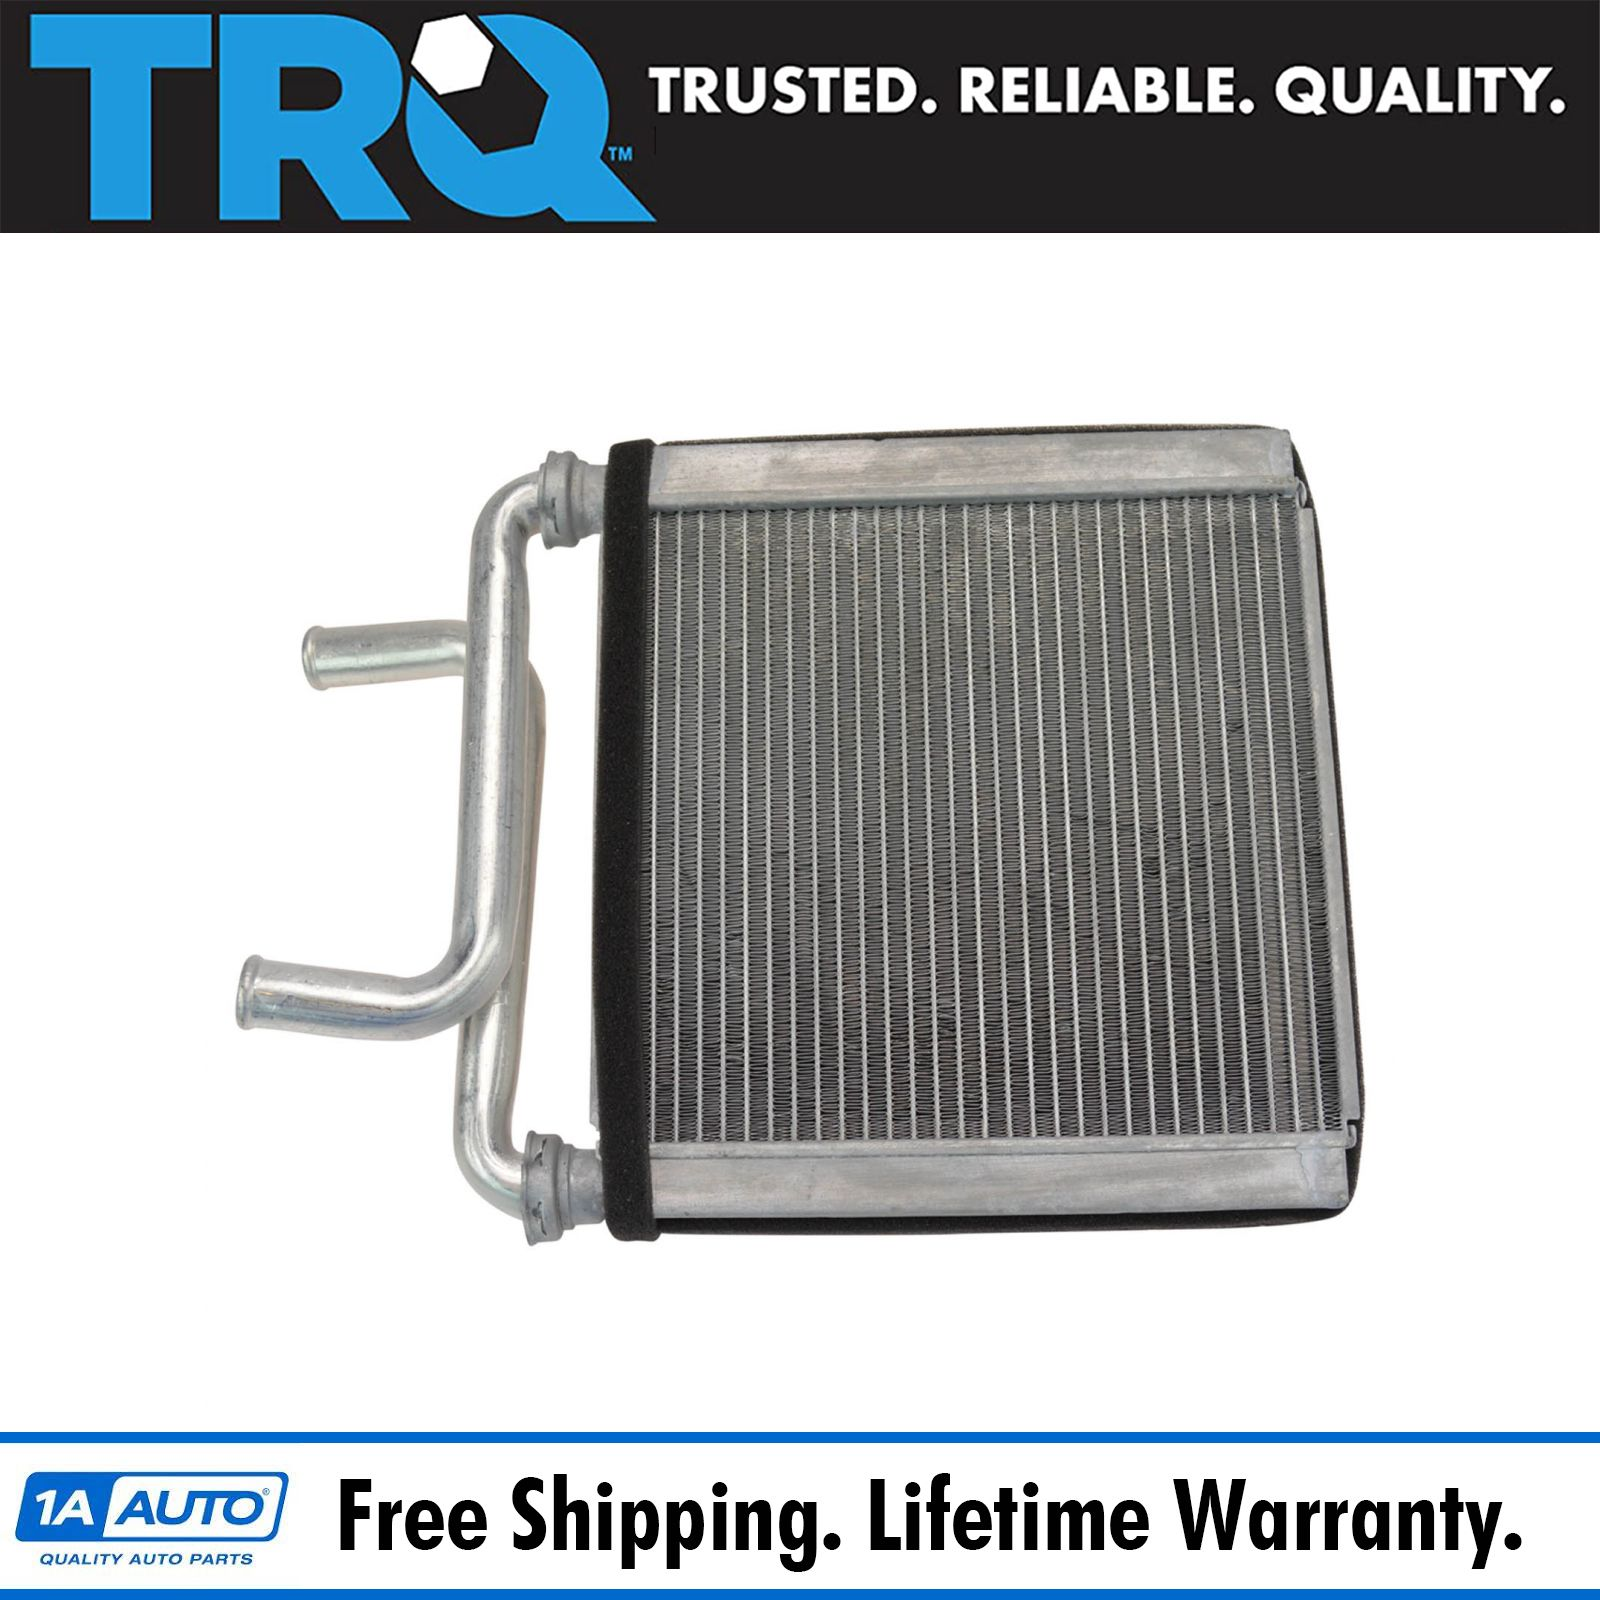 For 2002-2008 Dodge Ram 1500 Heater Core Spectra 64286XC 2003 2005 2006 2004